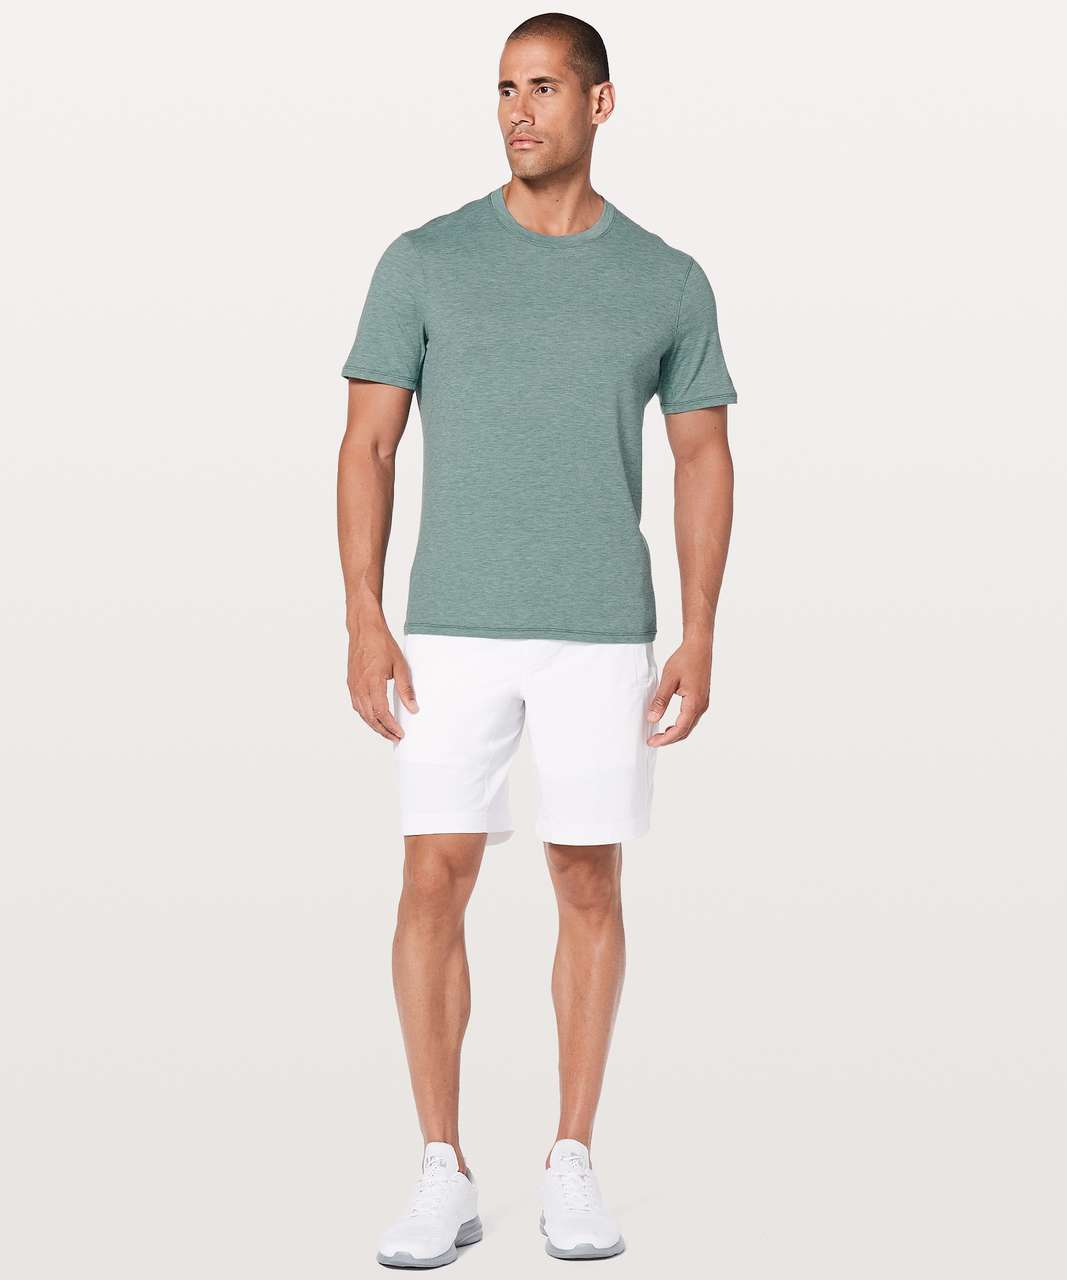 Lululemon Somatic Aero Short Sleeve - Heathered Deep Cove